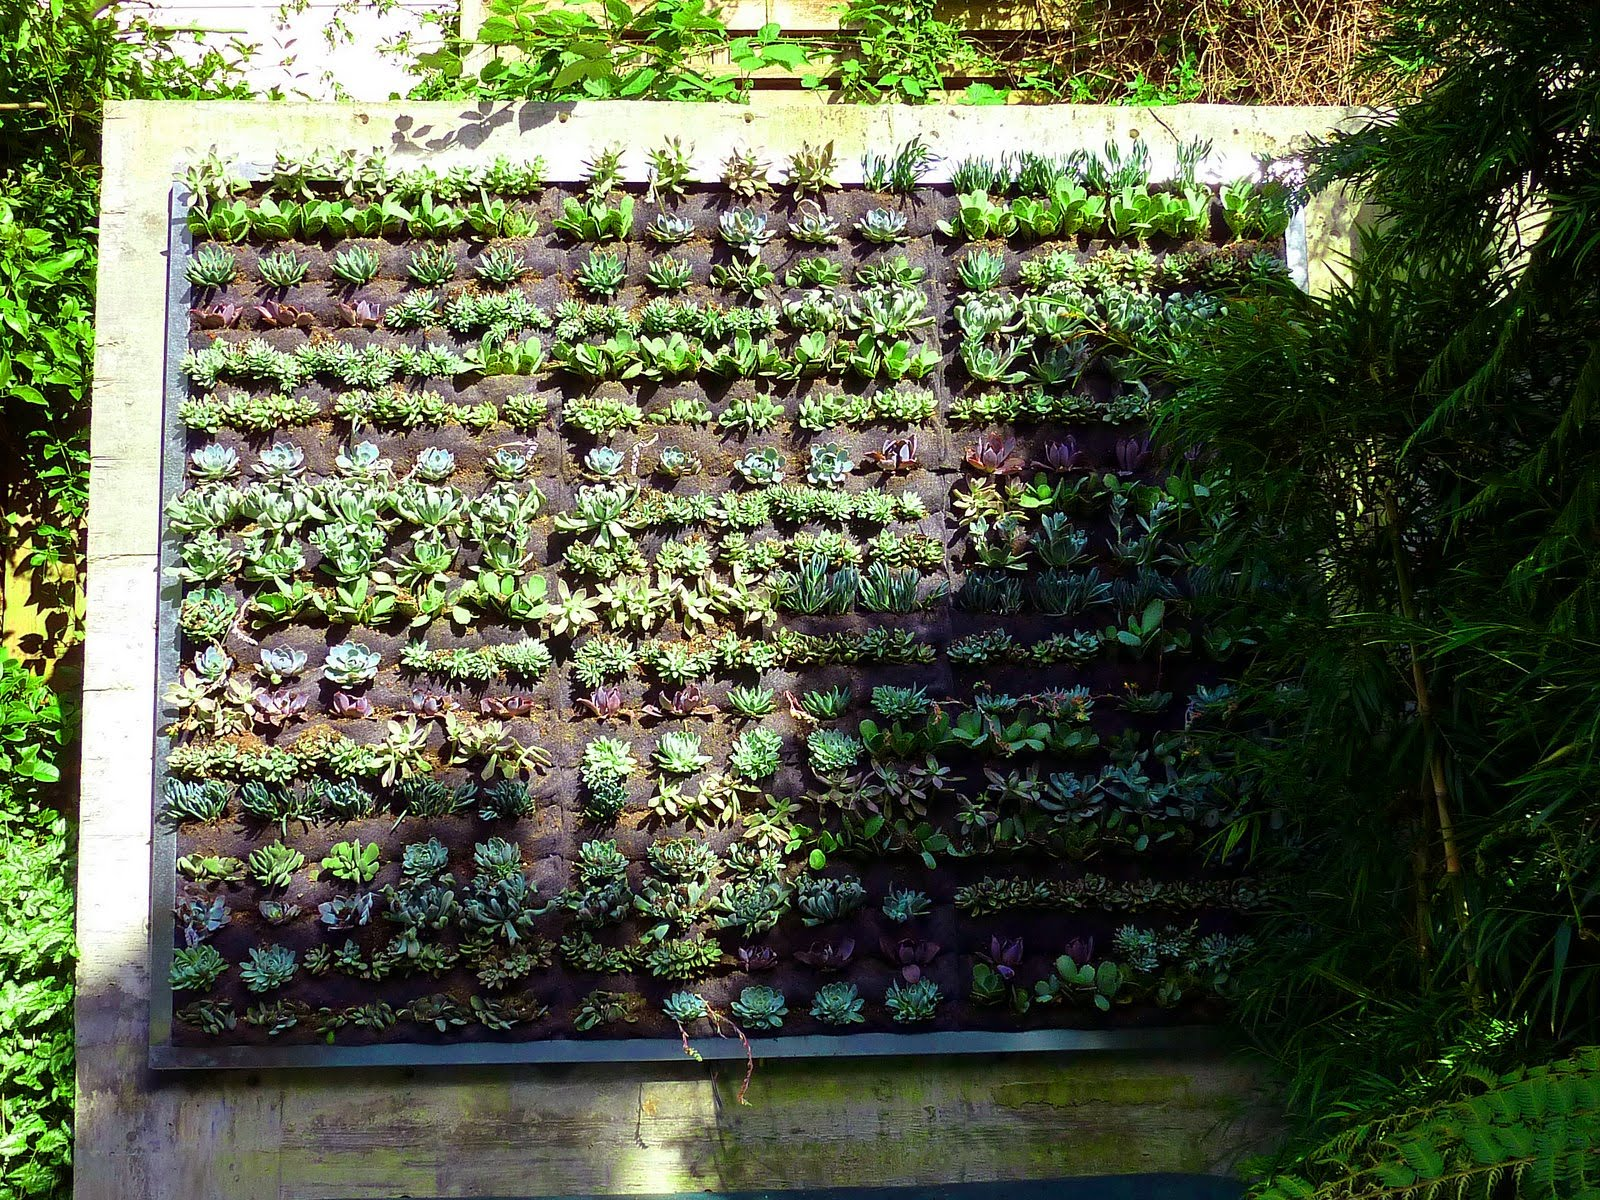 Plants on walls vertical garden systems june 2010 for Vertical garden wall systems